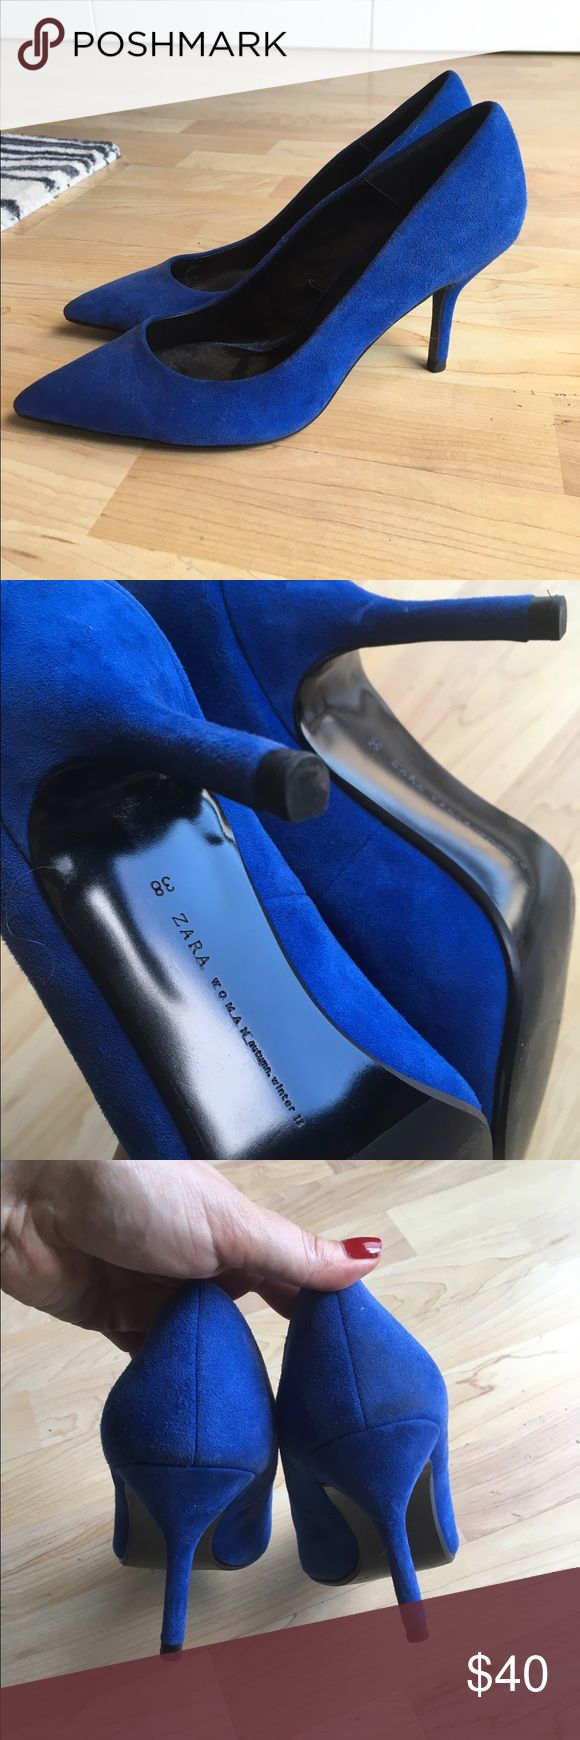 Blue Suede Zara Pointed Pumps Blue suede pointed pumps from Zara. Mid-level heel - very comfortable. Worn only once and in excellent shape (see photo of sole). Zara Shoes Heels